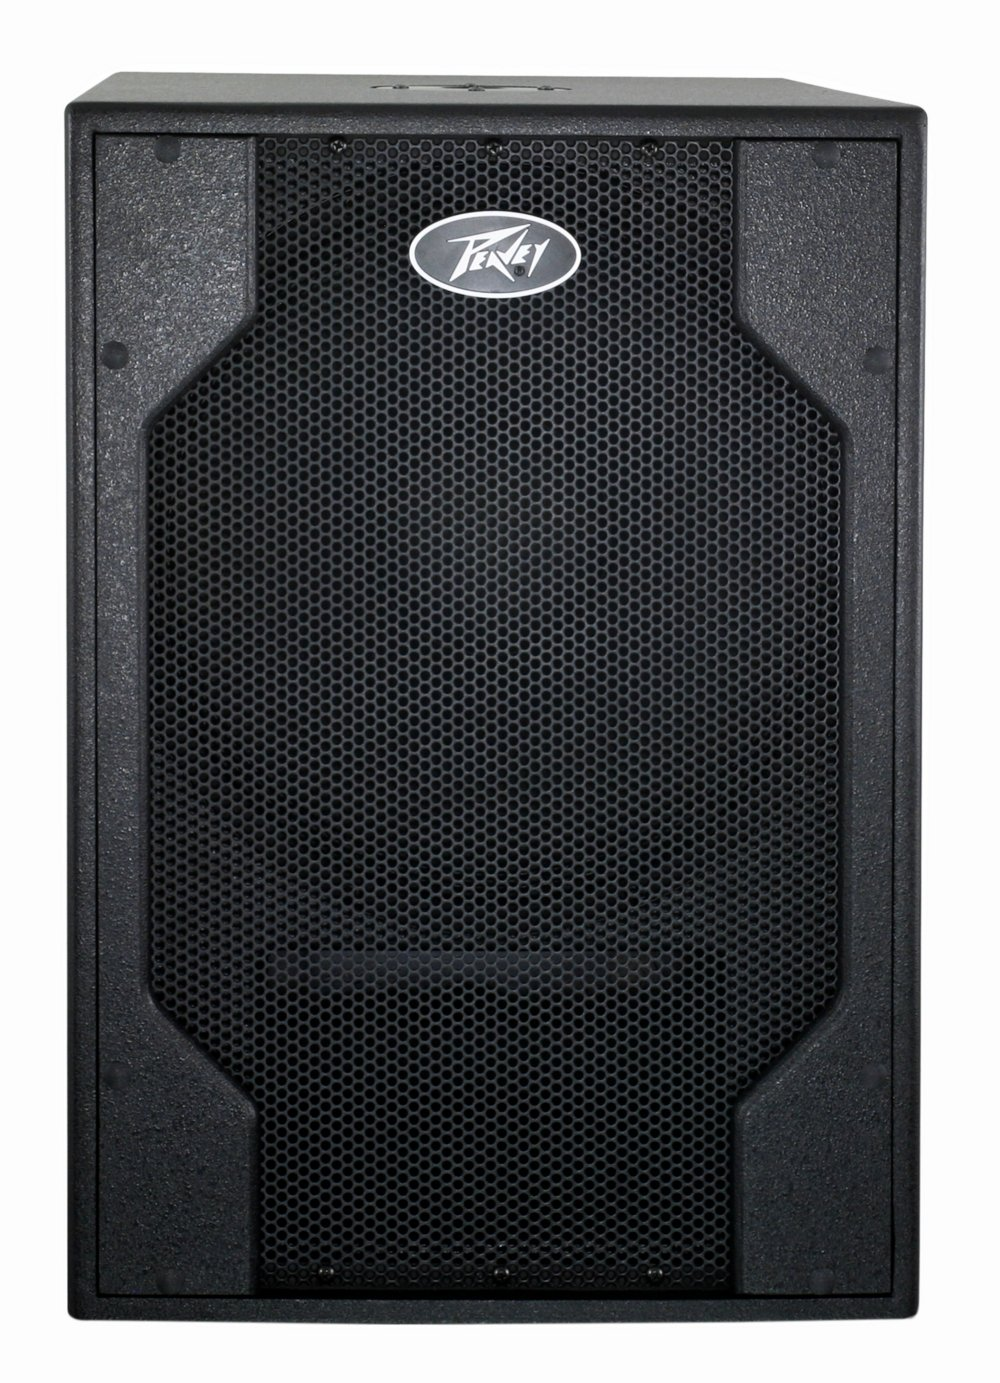 Peavey PVXpSub Powered Subwoofer